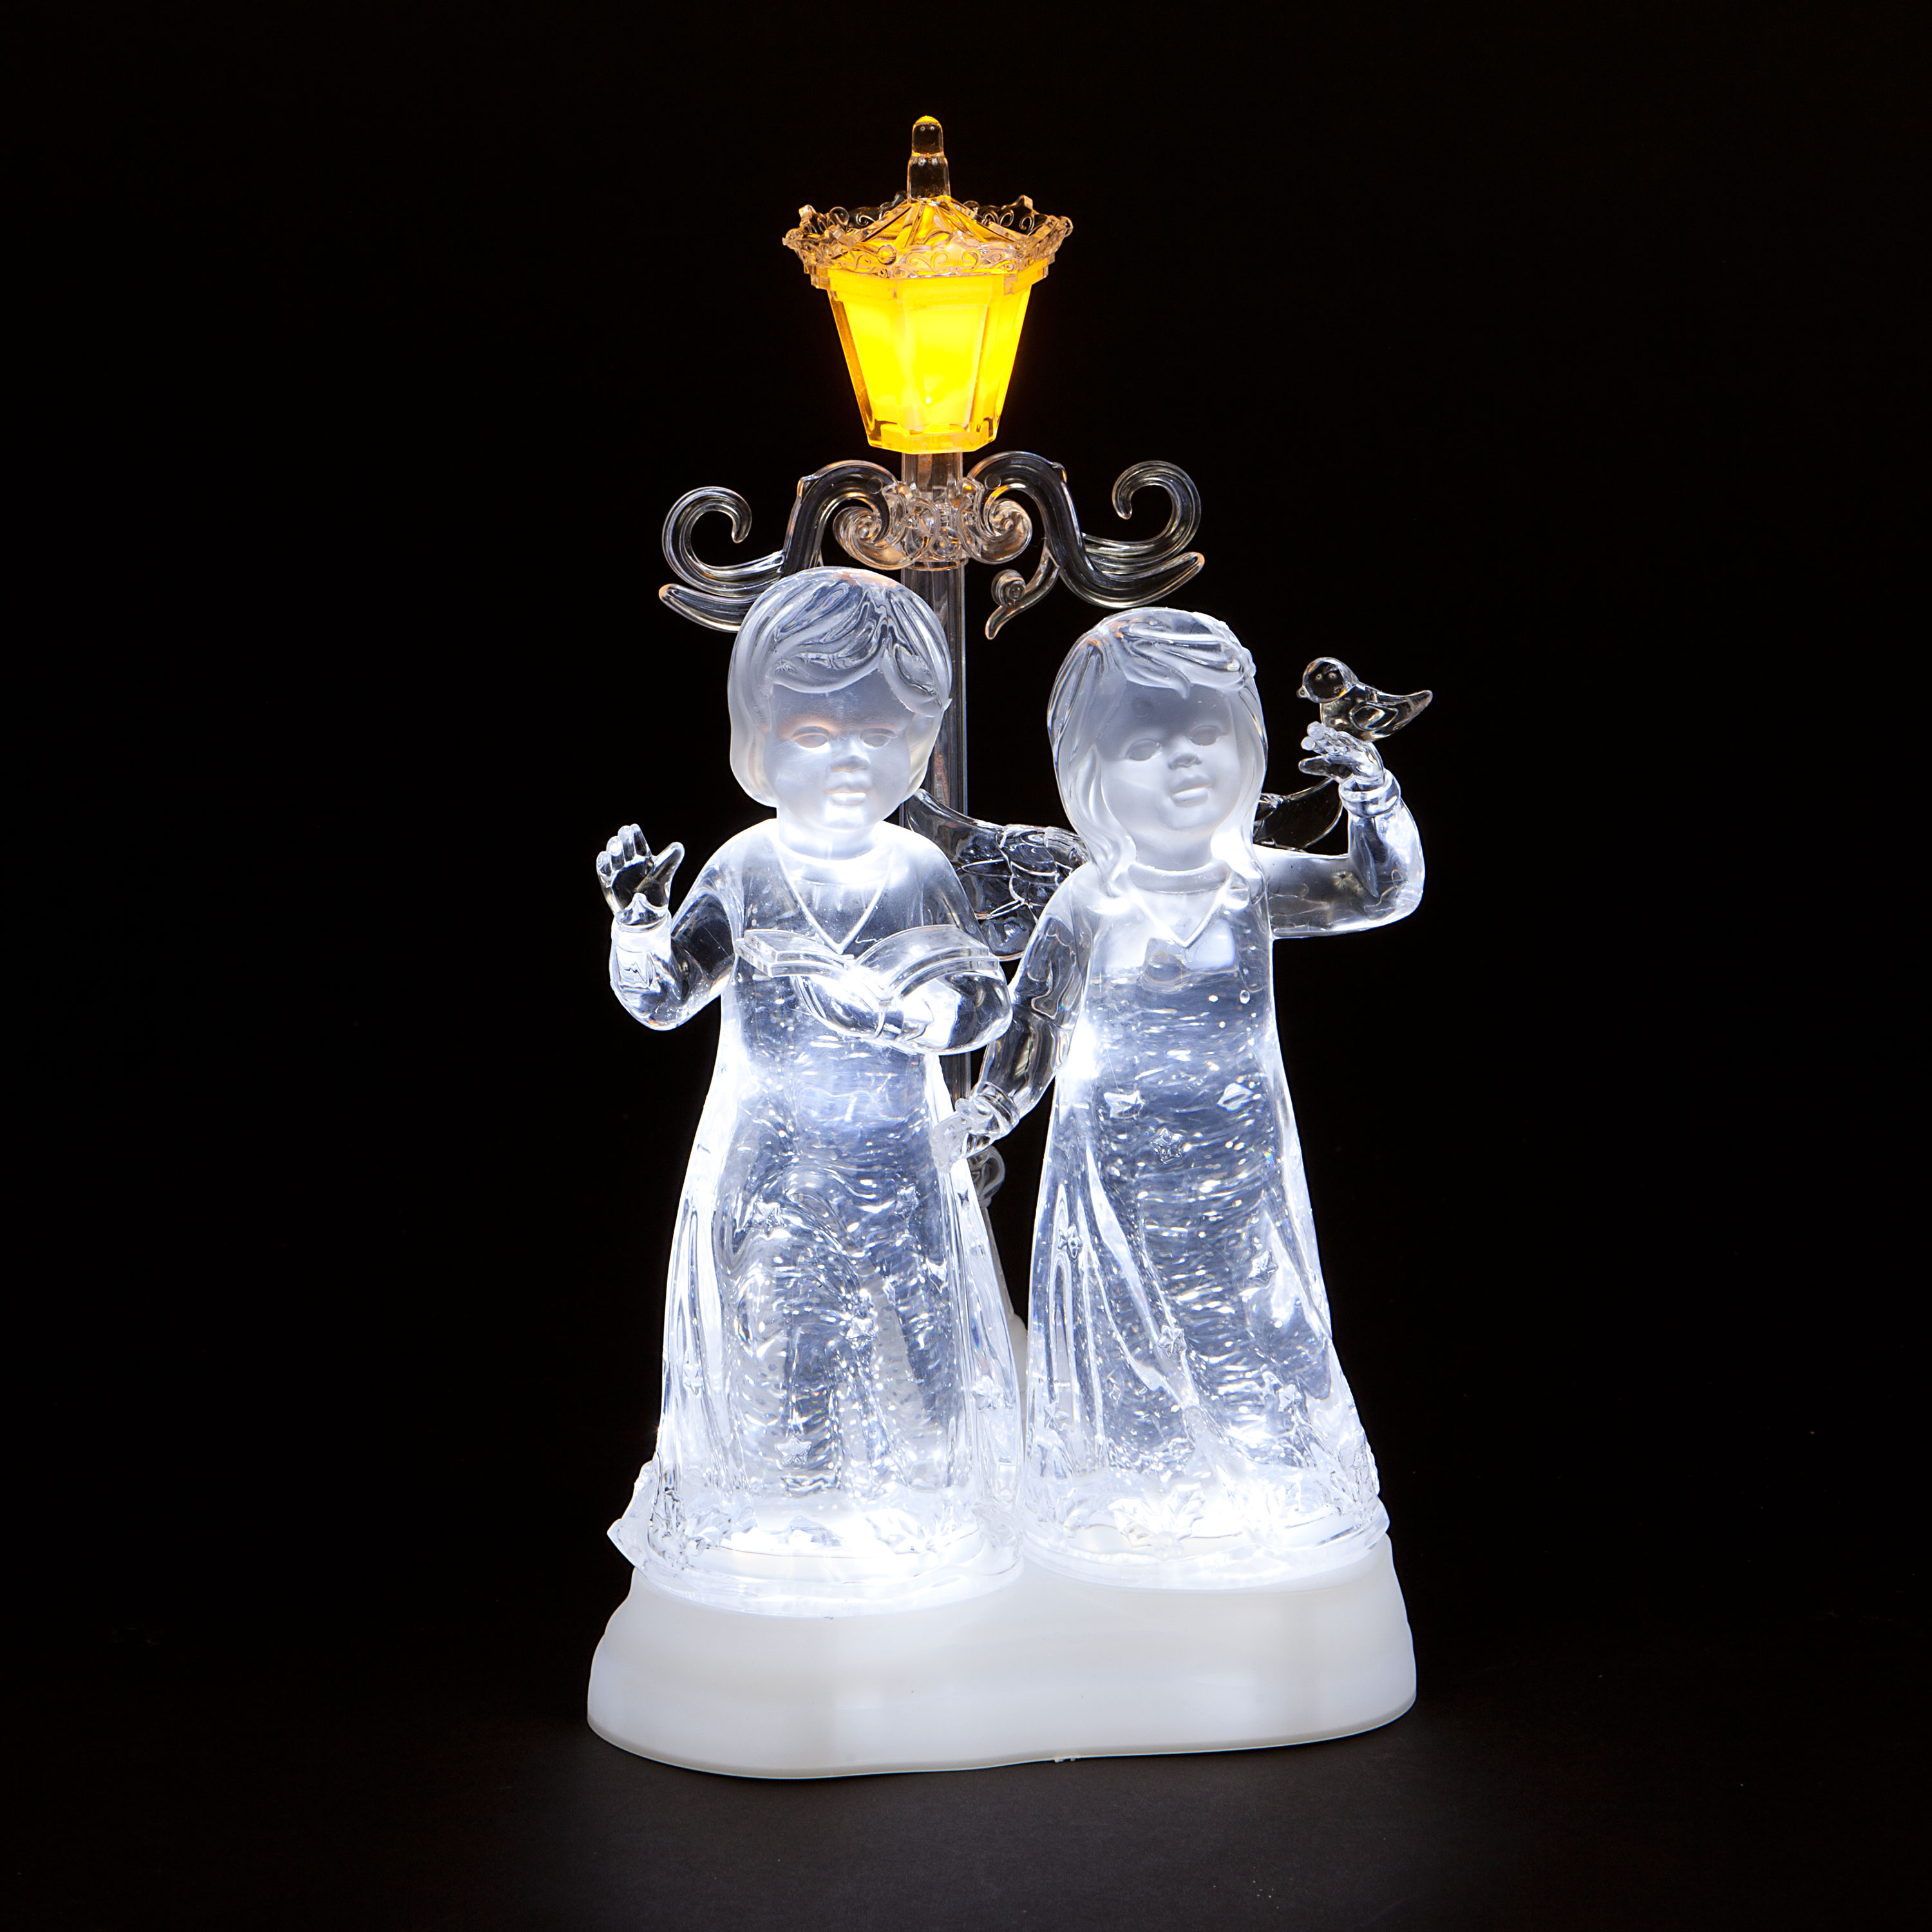 Acrylic Water Angels with Ice White LEDs